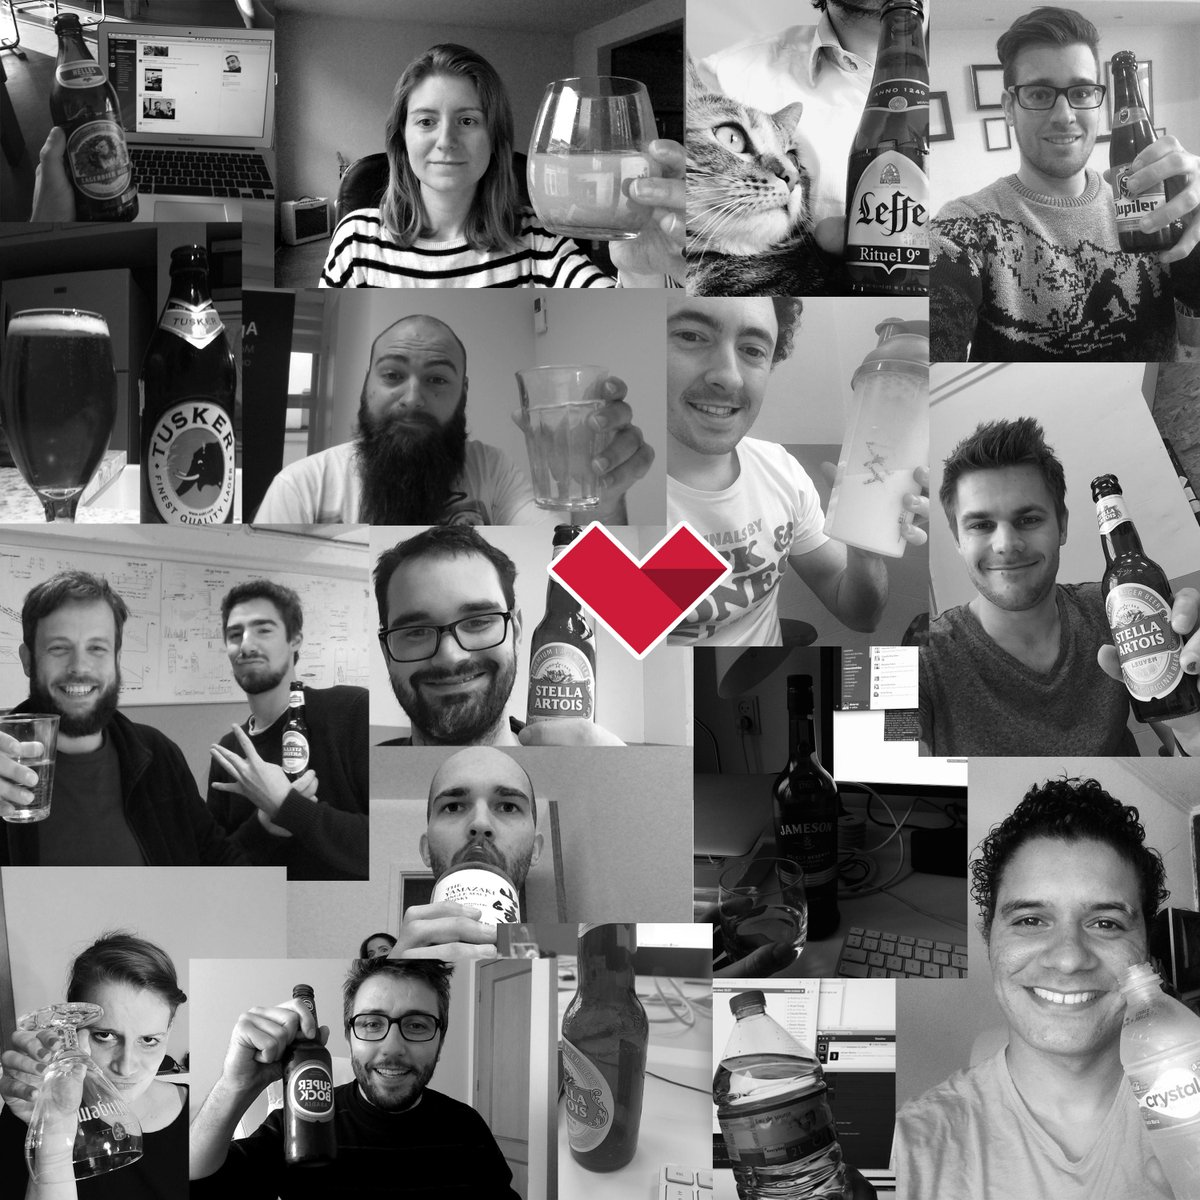 After our #innovationfriday, it is beer o'clock around the world for the @madewithlove team (or any other beverages) http://t.co/euIQSD9kPA